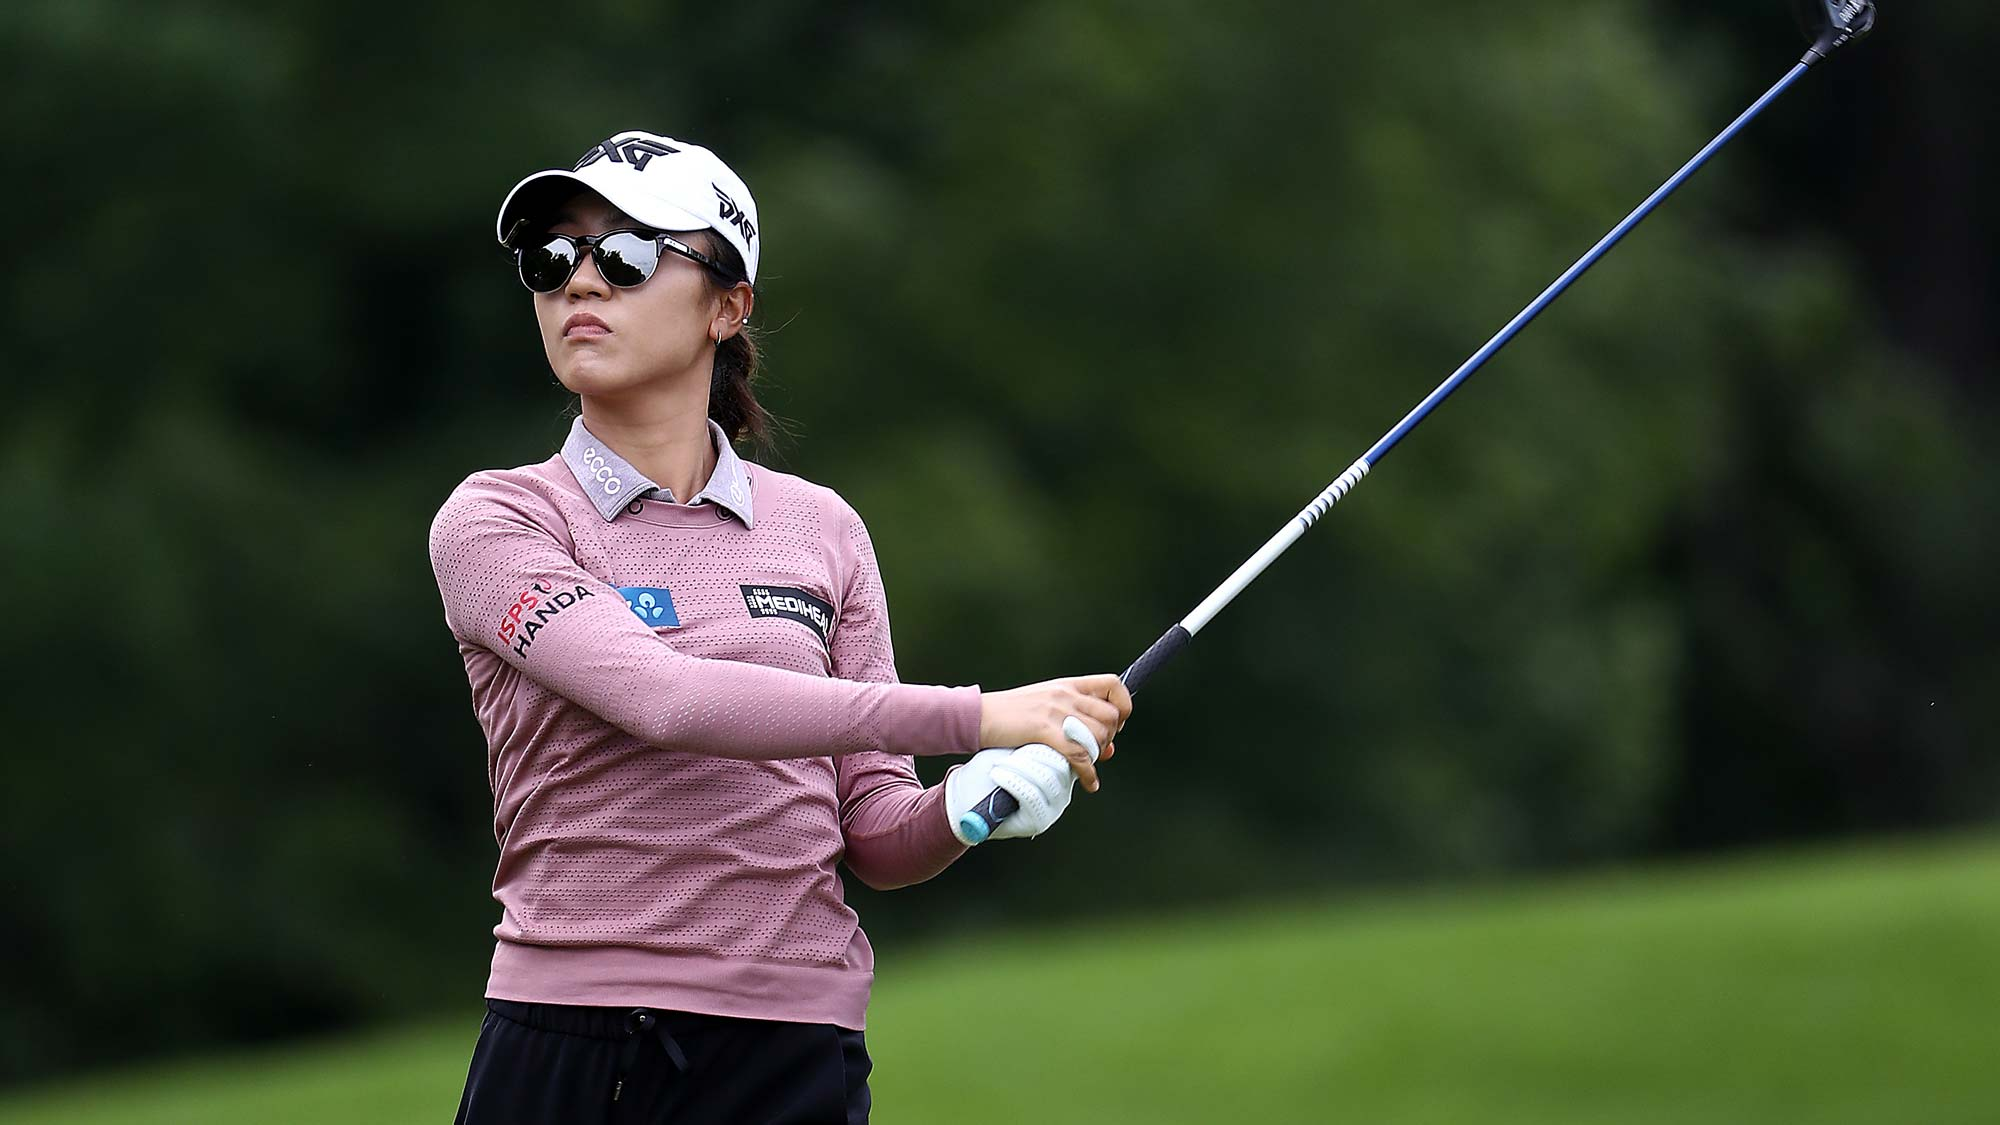 Lydia Ko of New Zealand hits her first shot on the 15th hole during the first round of the KPMG Women's PGA Championship